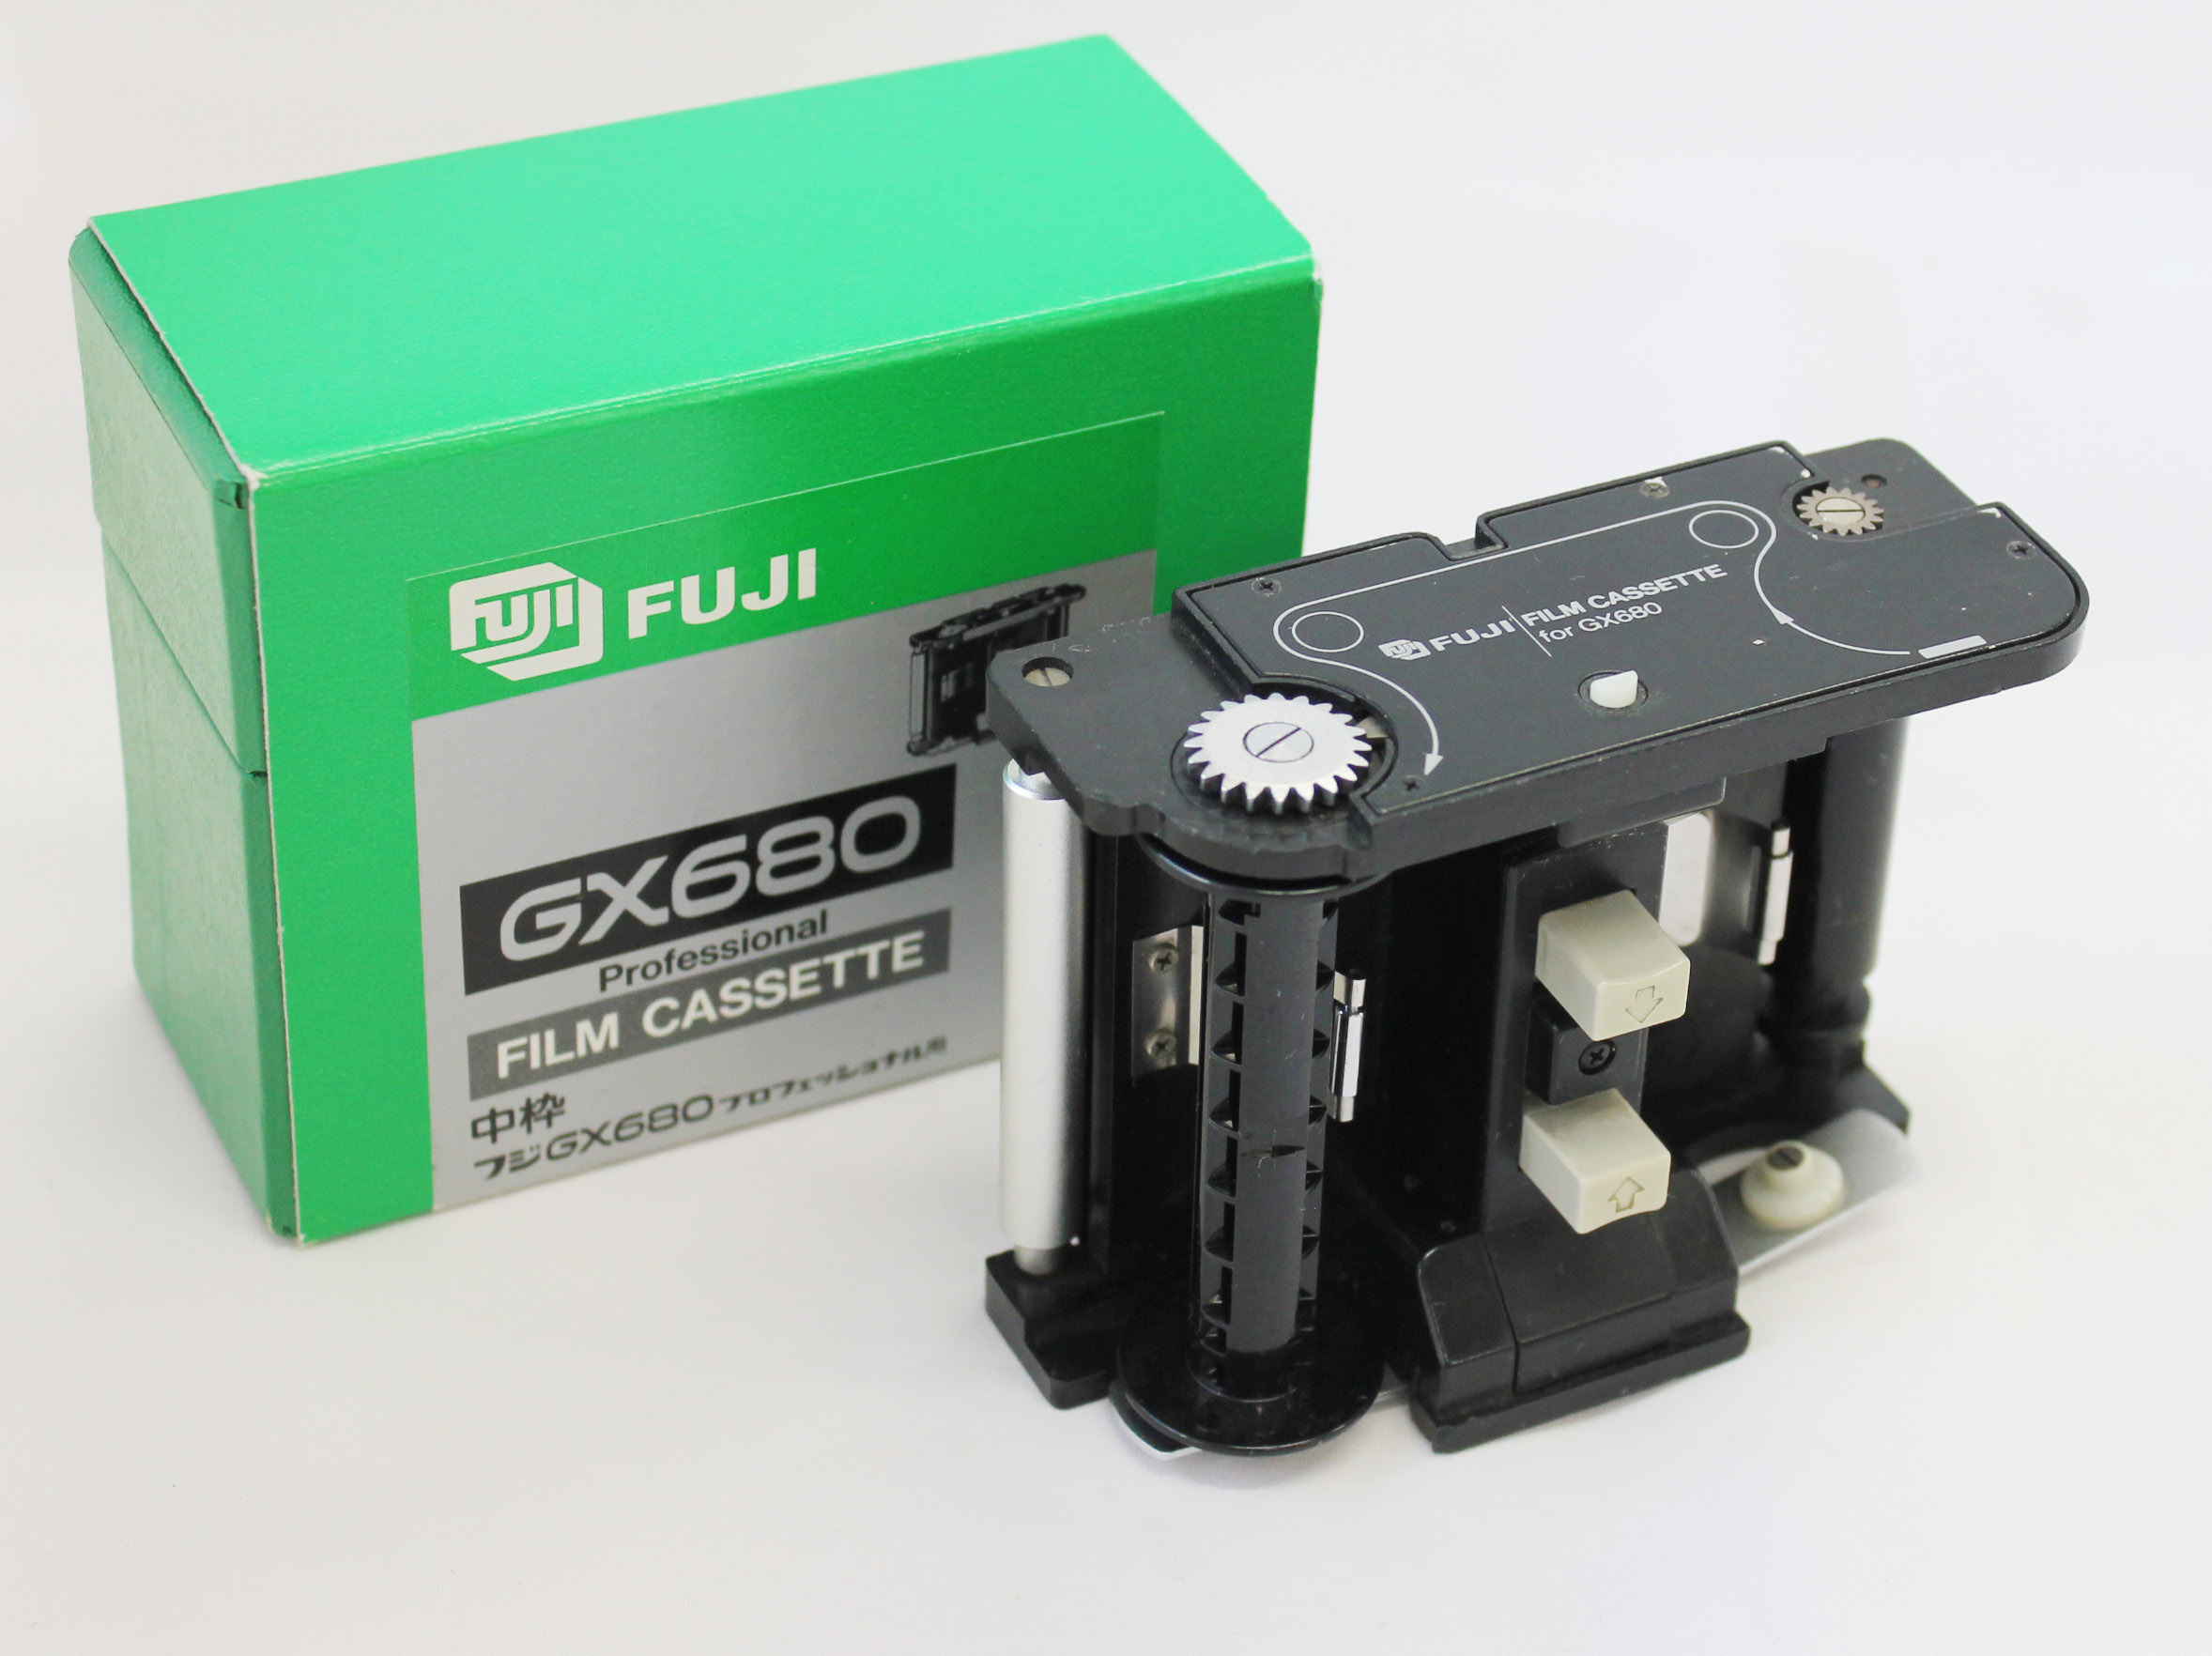 Japan Used Camera Shop | Fuji Fujifilm GX680 Professional Film Casette Insert in Box from Japan